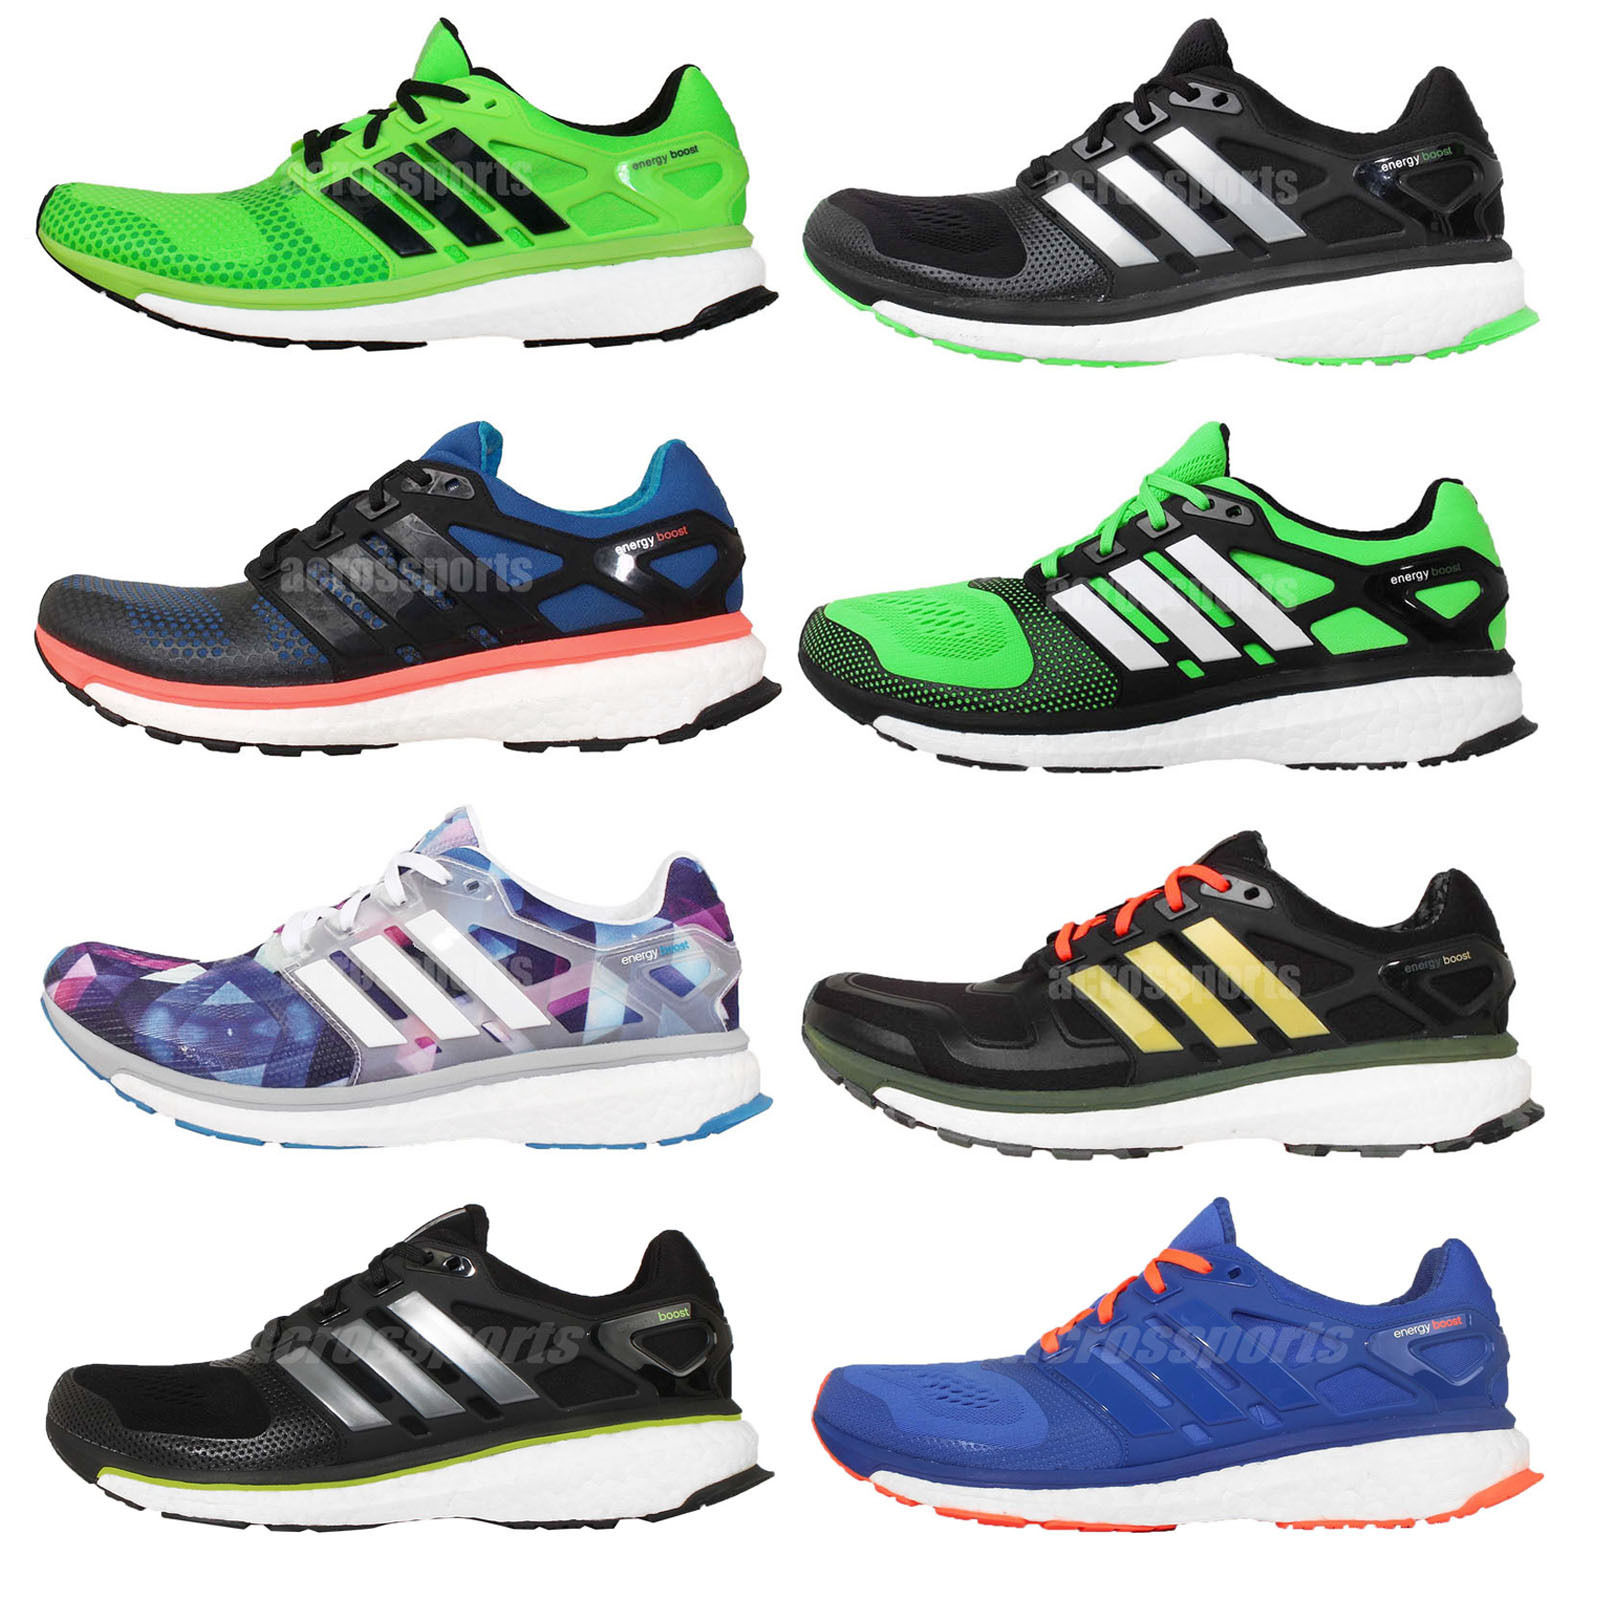 Chaussures running adidas energy boost 2 esm